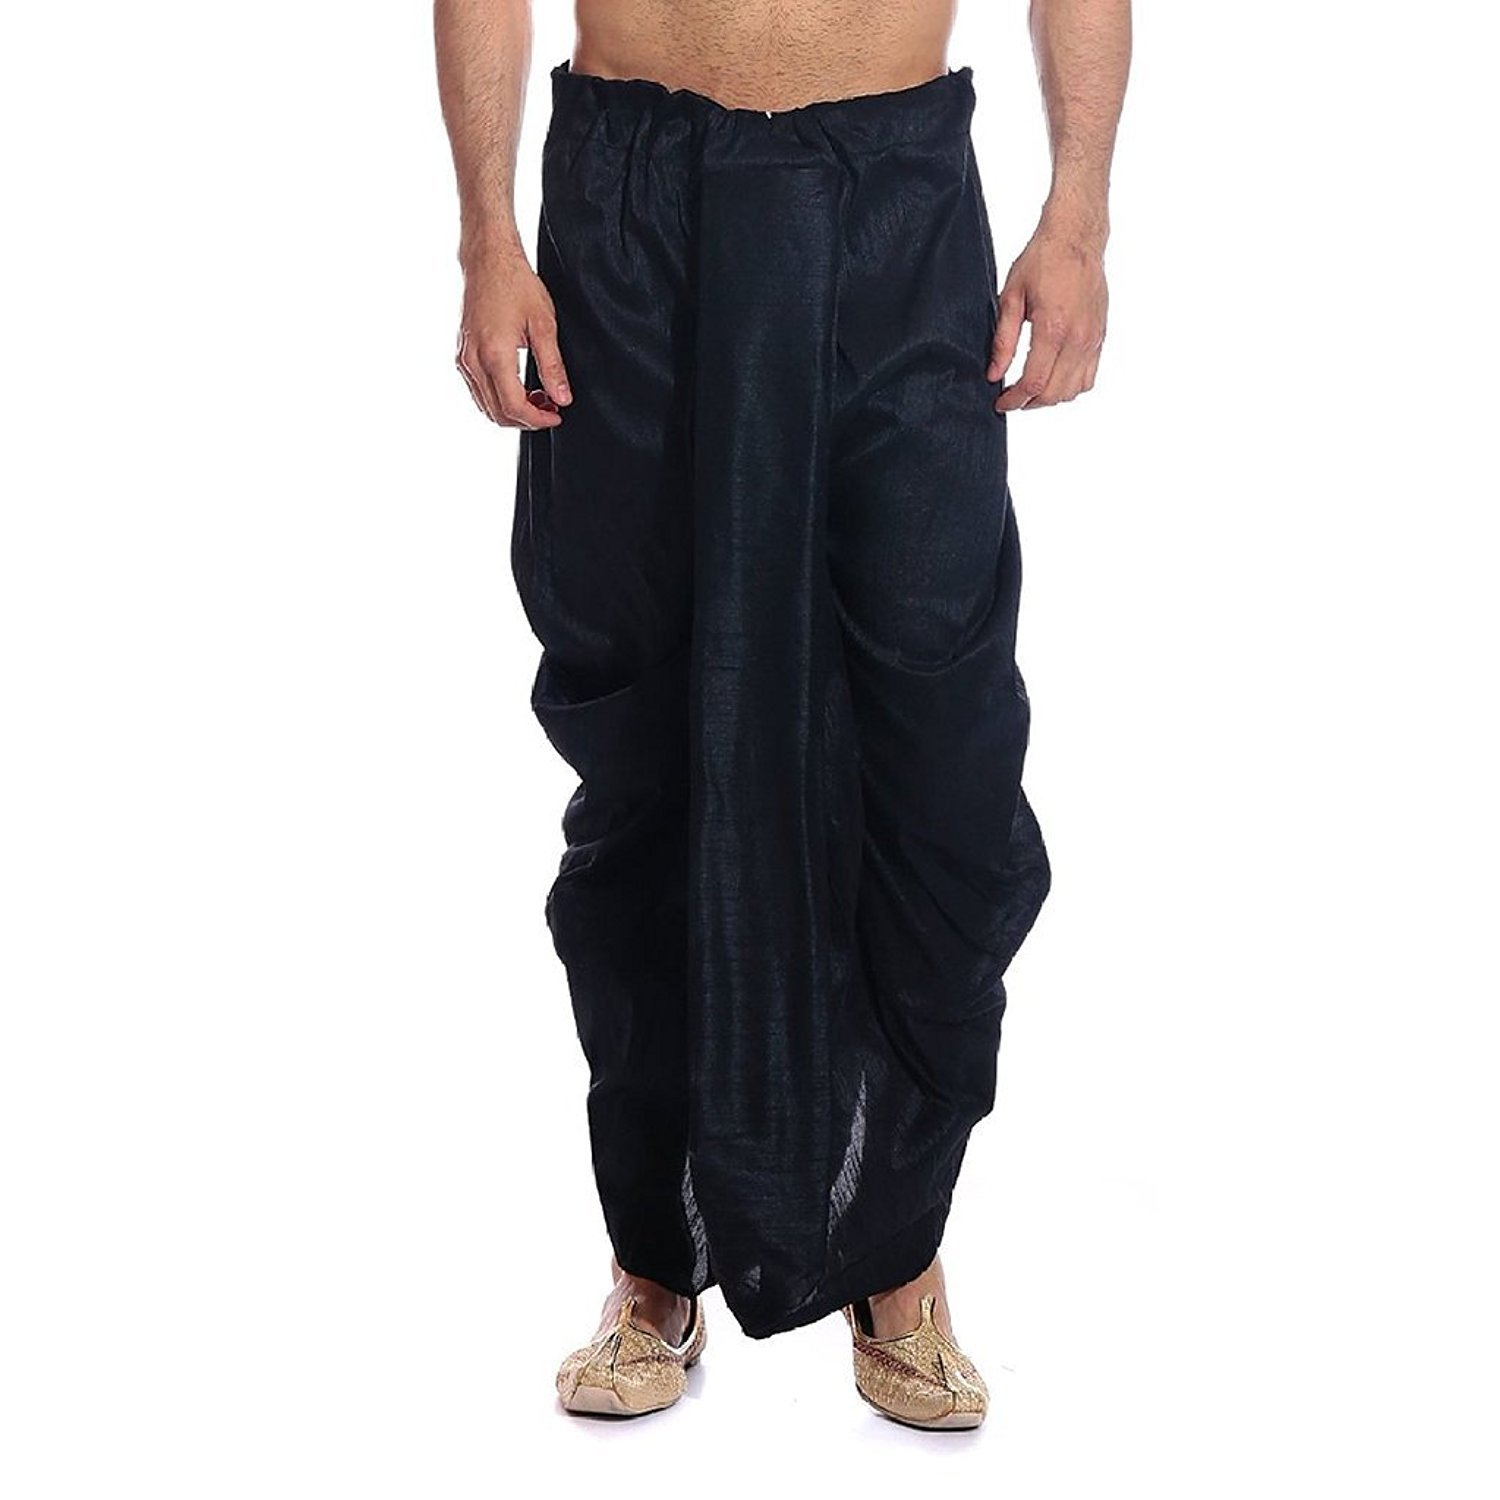 Royal Kurta Men's Art Silk Fine Quality Ready To Wear Dhoti Pants Free Size Black